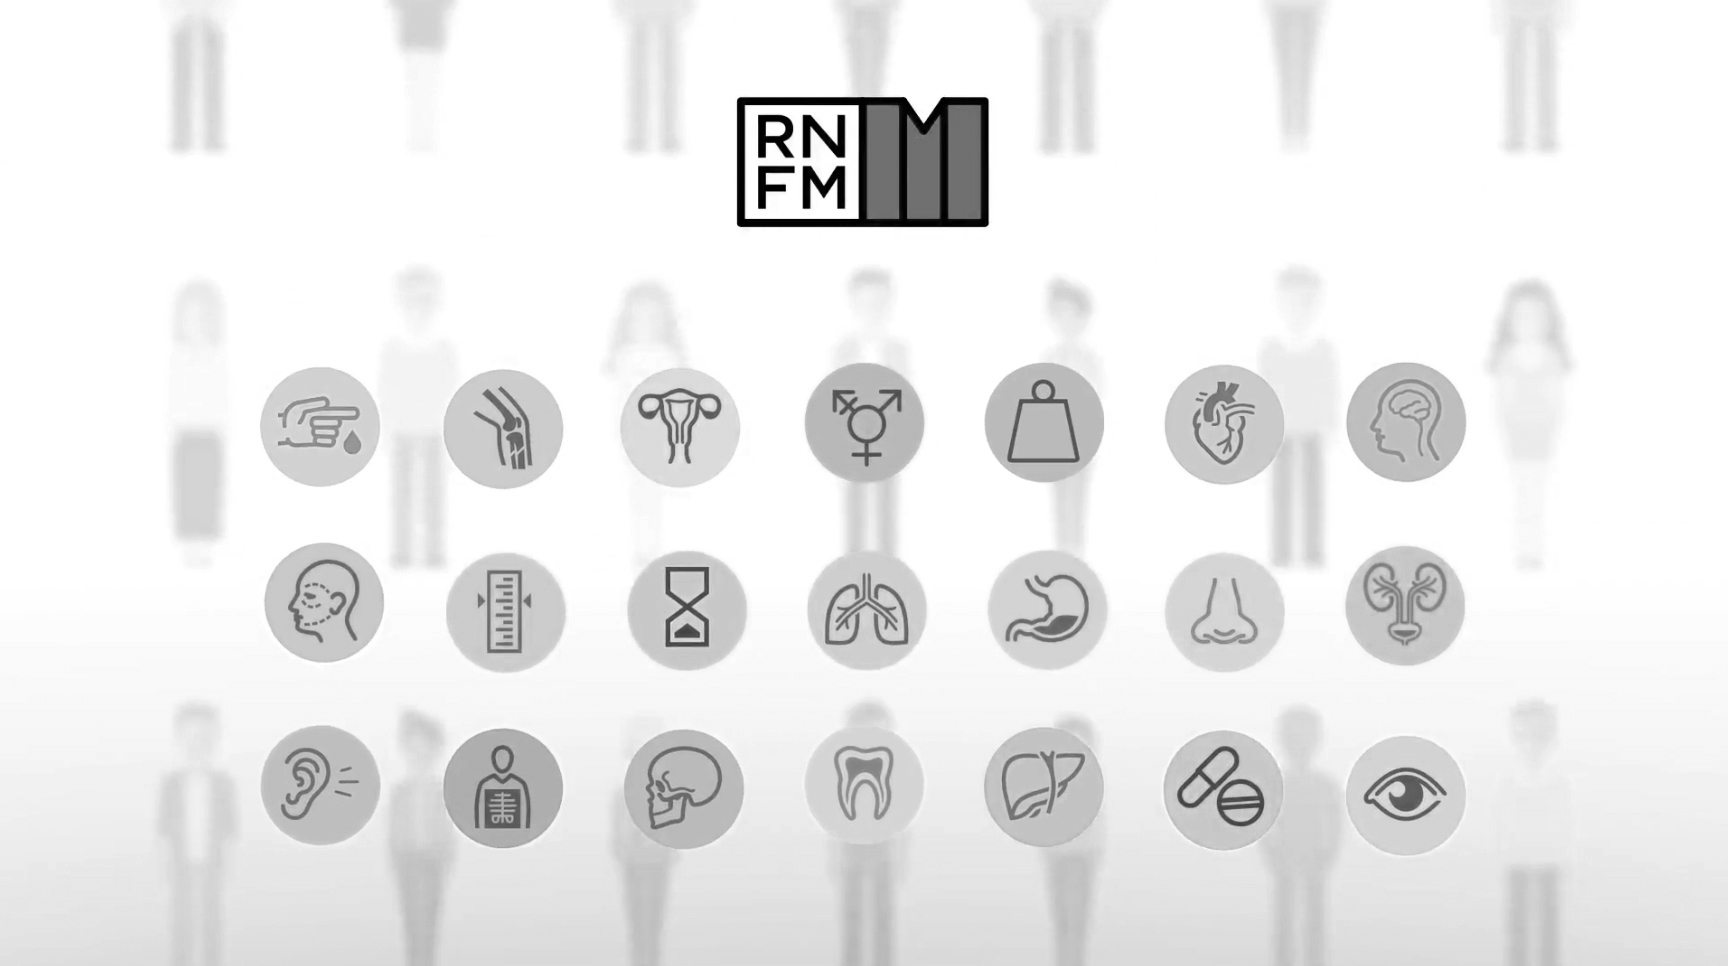 RNFM  |  Research Network Family Medicine